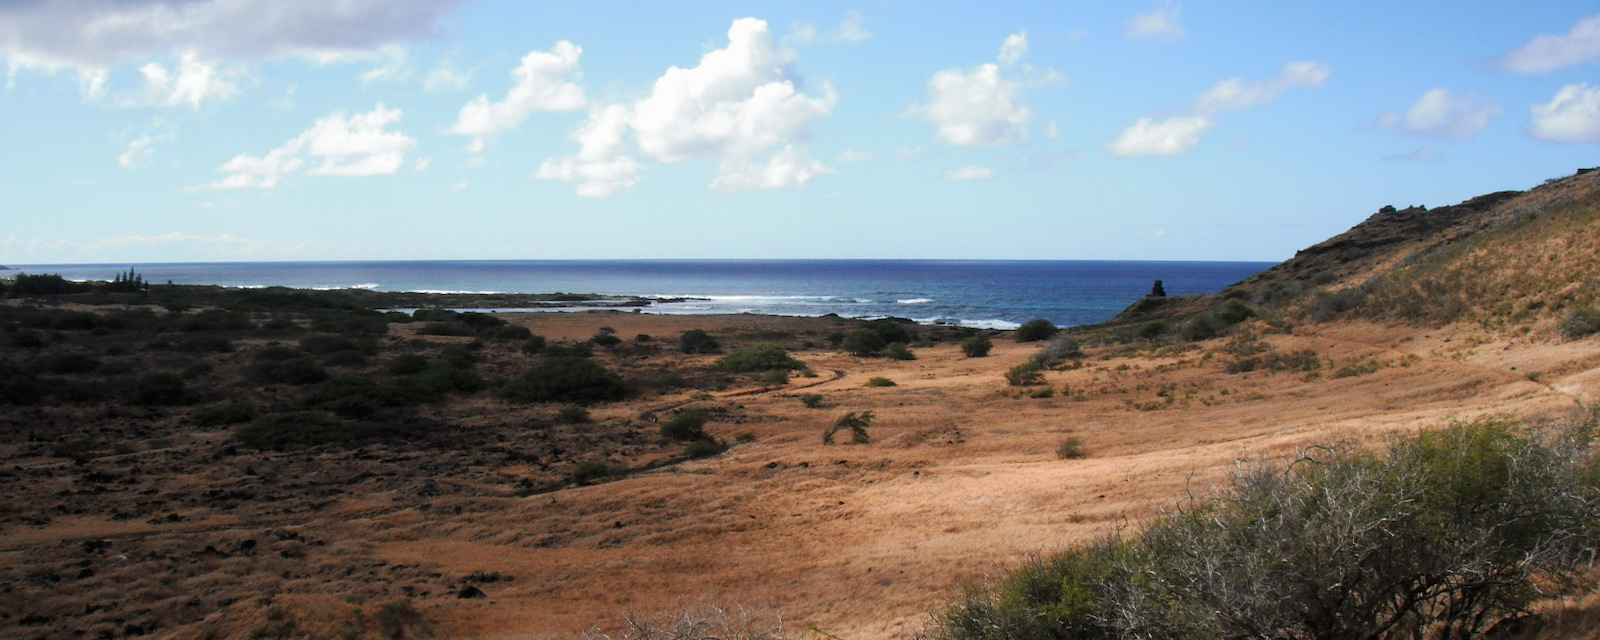 Dry ranch land on Hawai'i